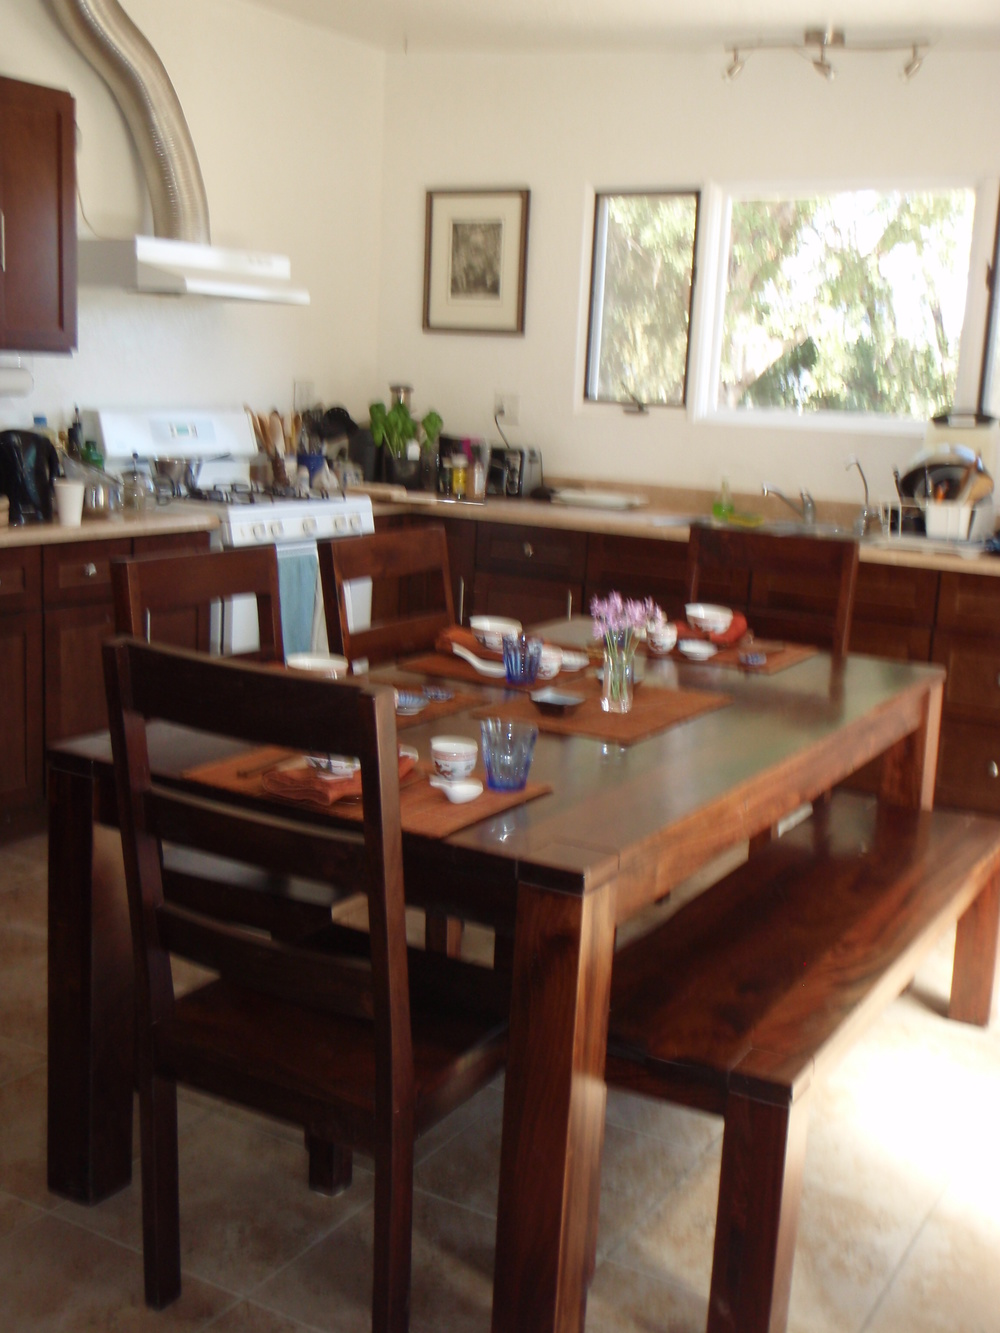 THE KITCHEN was upgraded with new cabinets and fixtures along with a dining table, chairs and bench. (Margaret Magnus photo, 2014.)